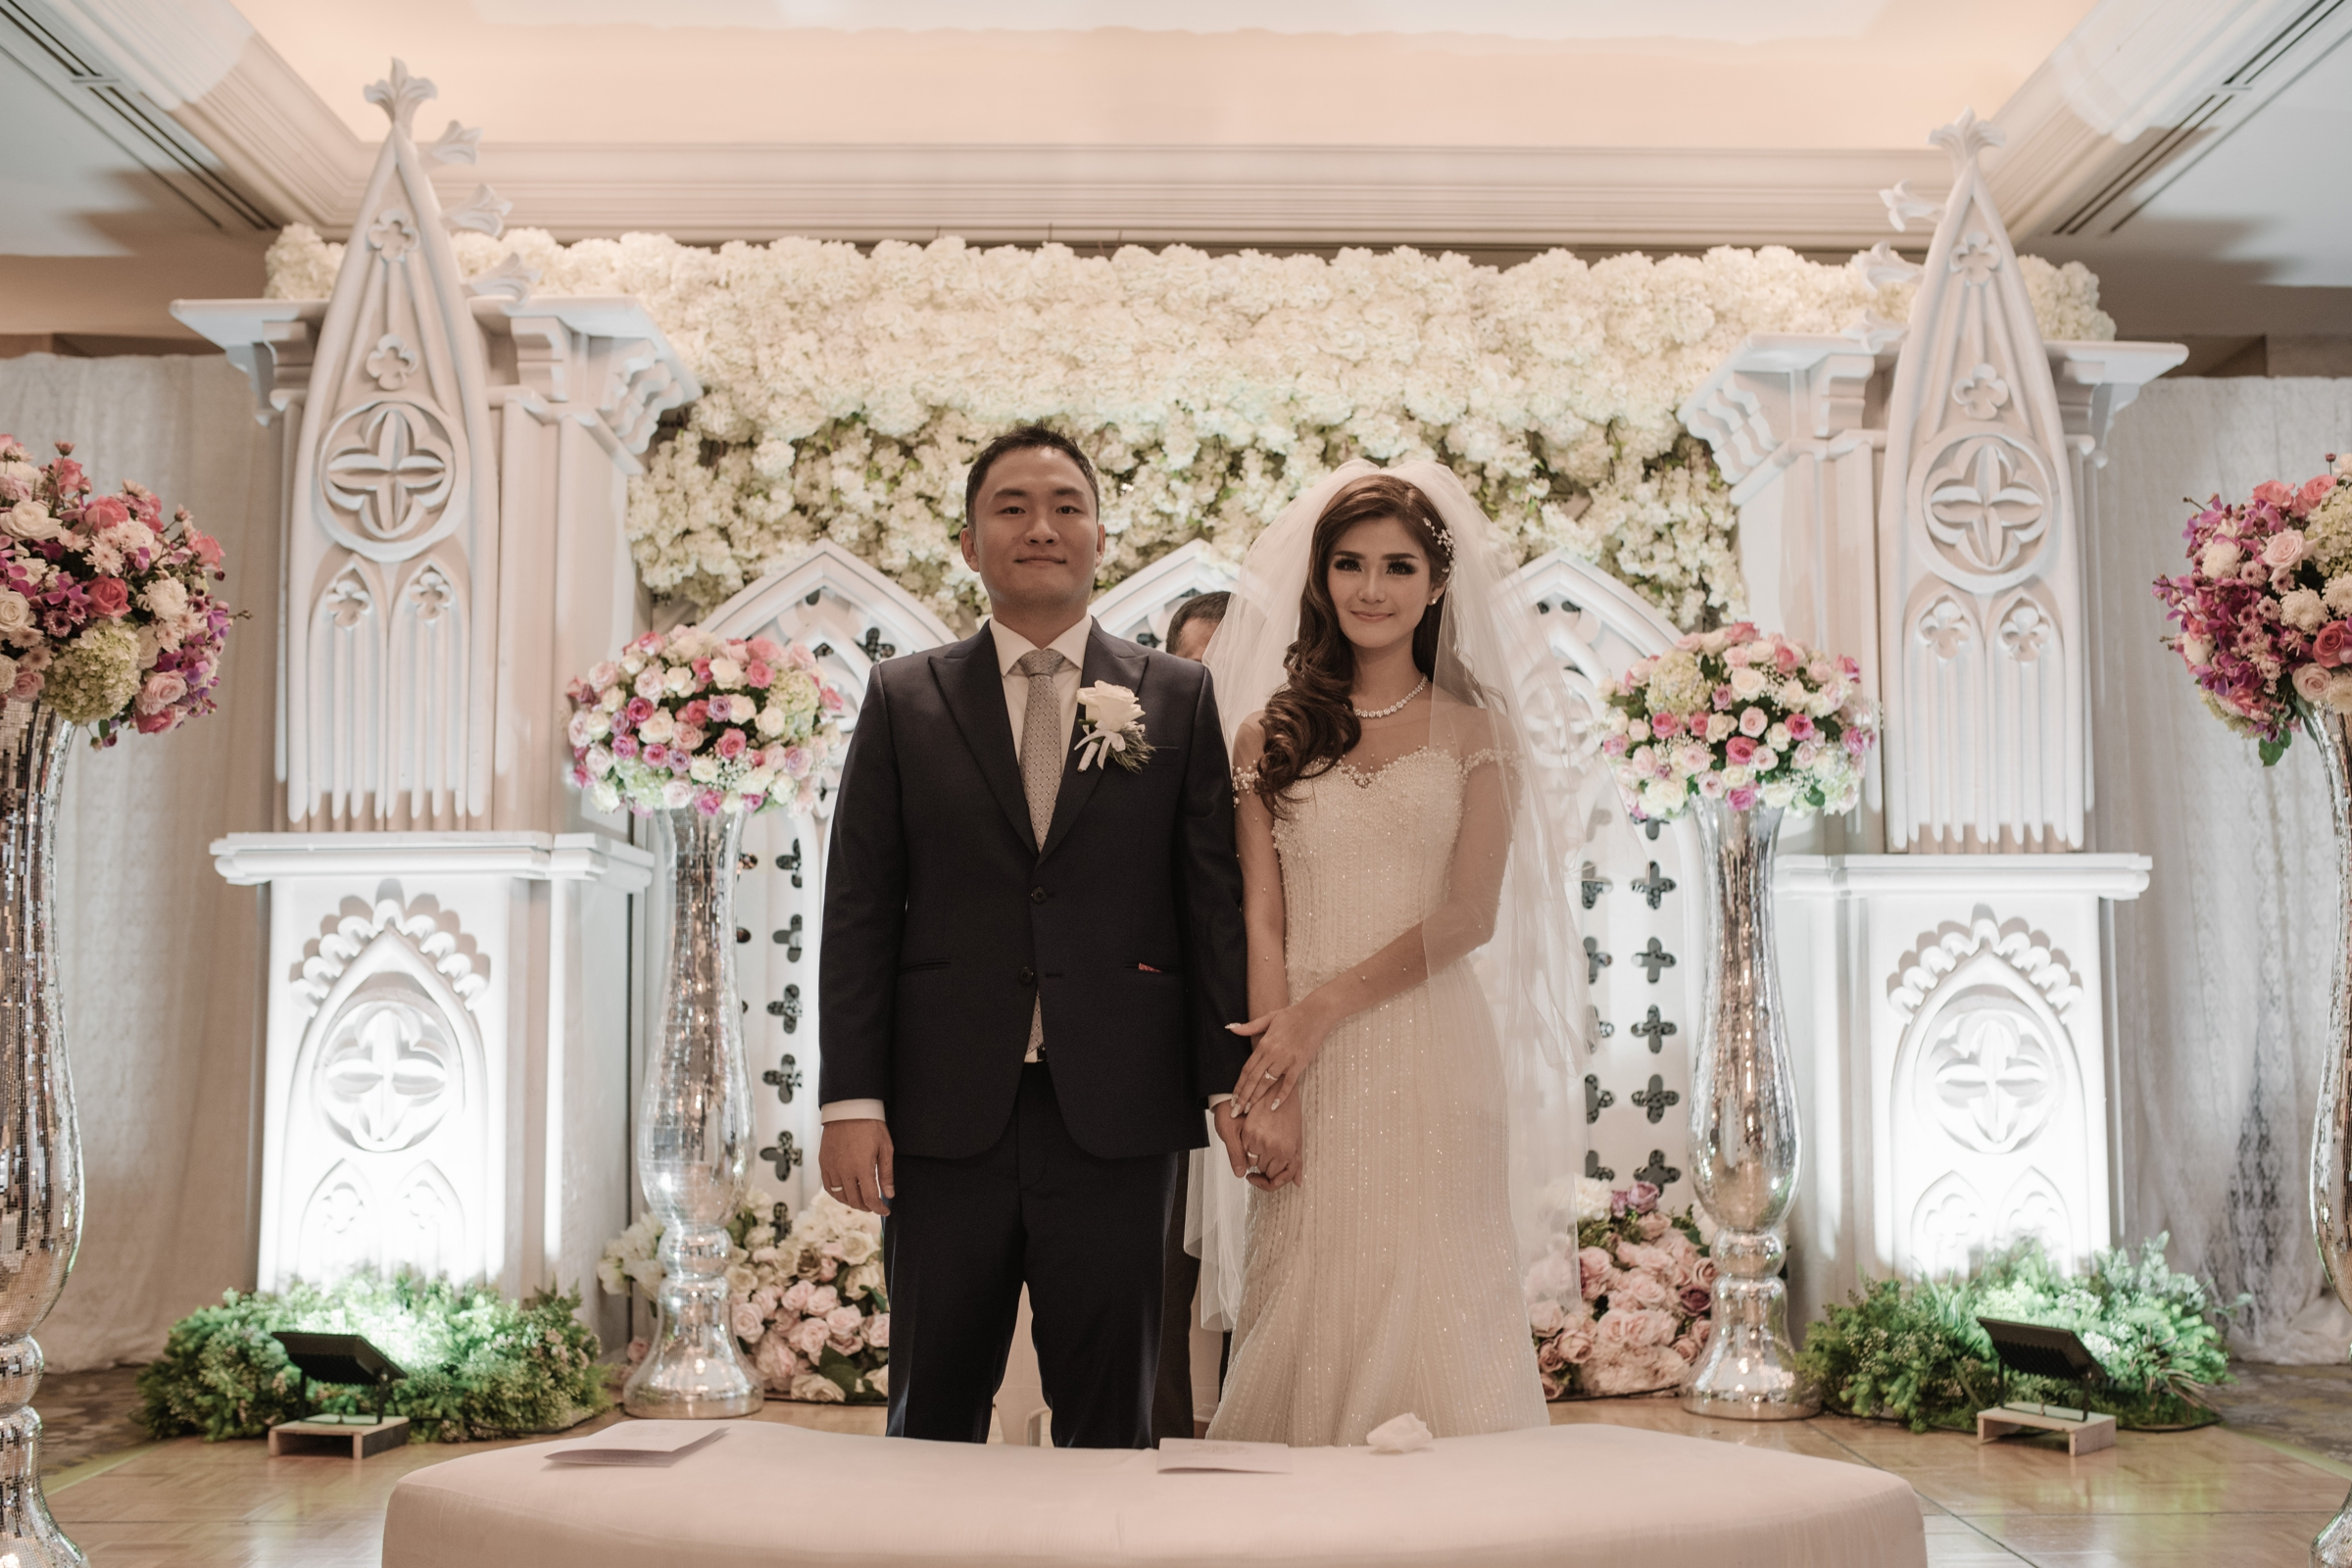 livia-reagan-wedding-raffles-jakarta-pyara-photo-gejoo 39.jpg